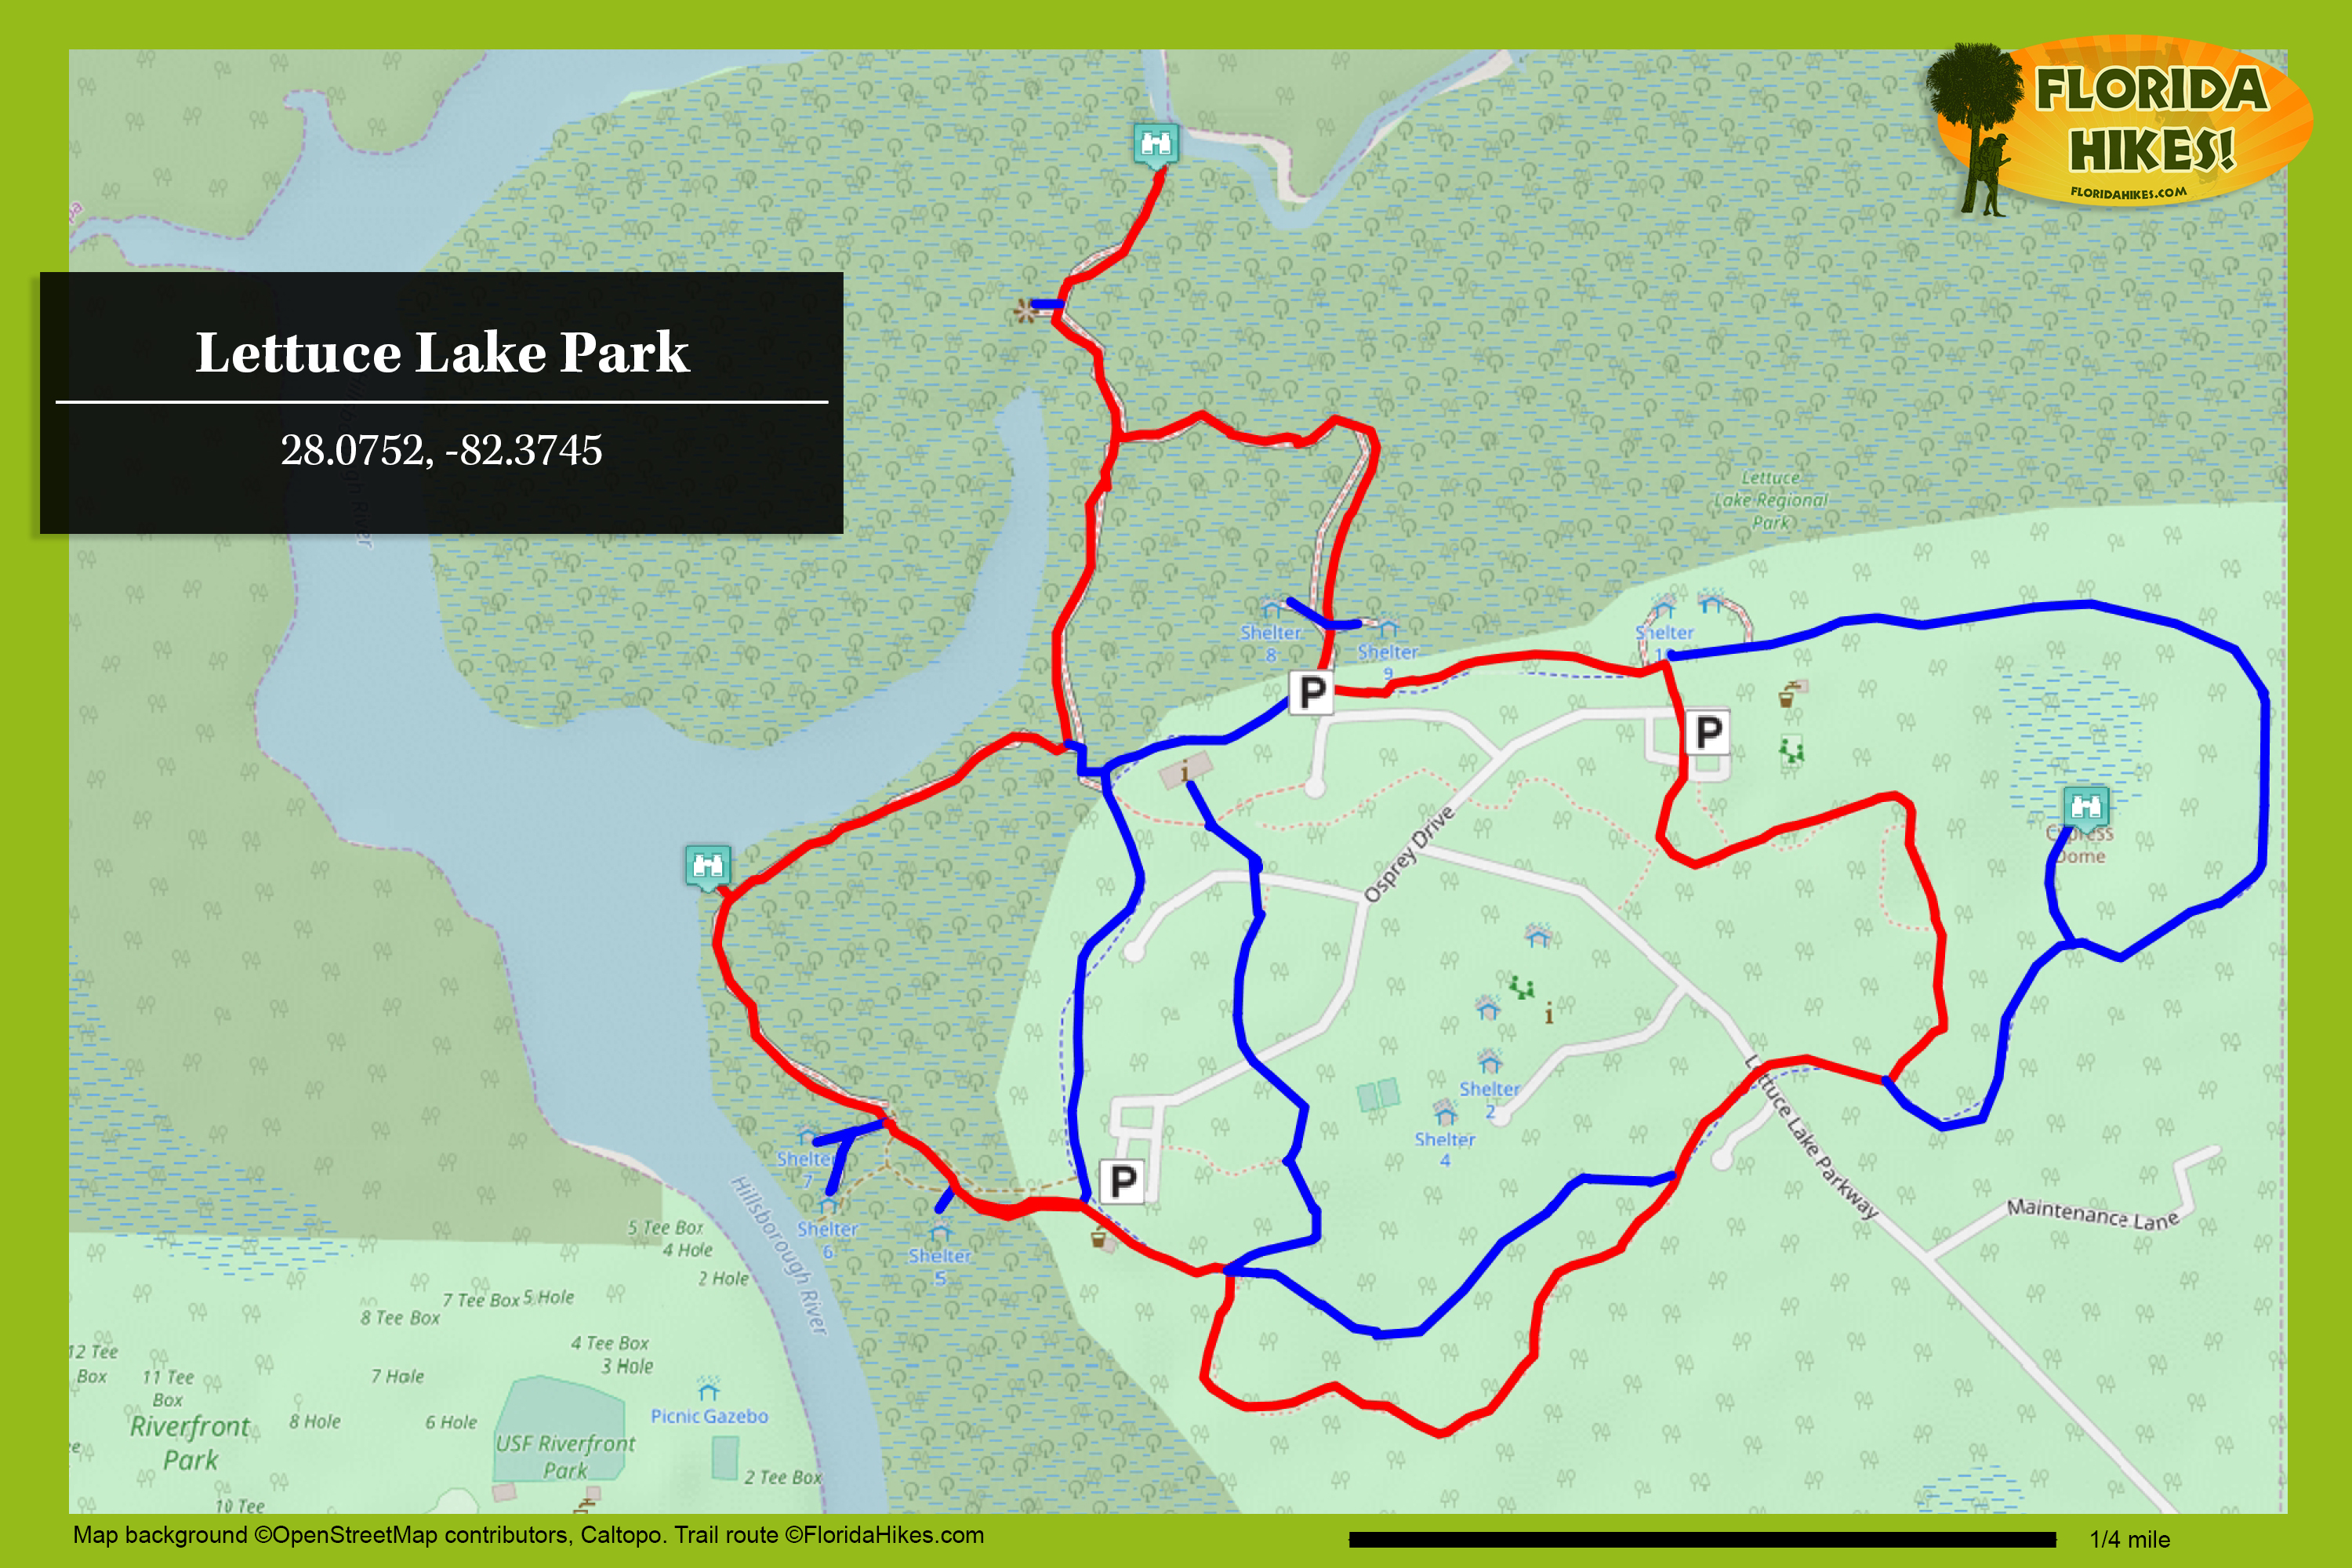 Lettuce Lake Park Map Lettuce Lake Park | Florida Hikes!